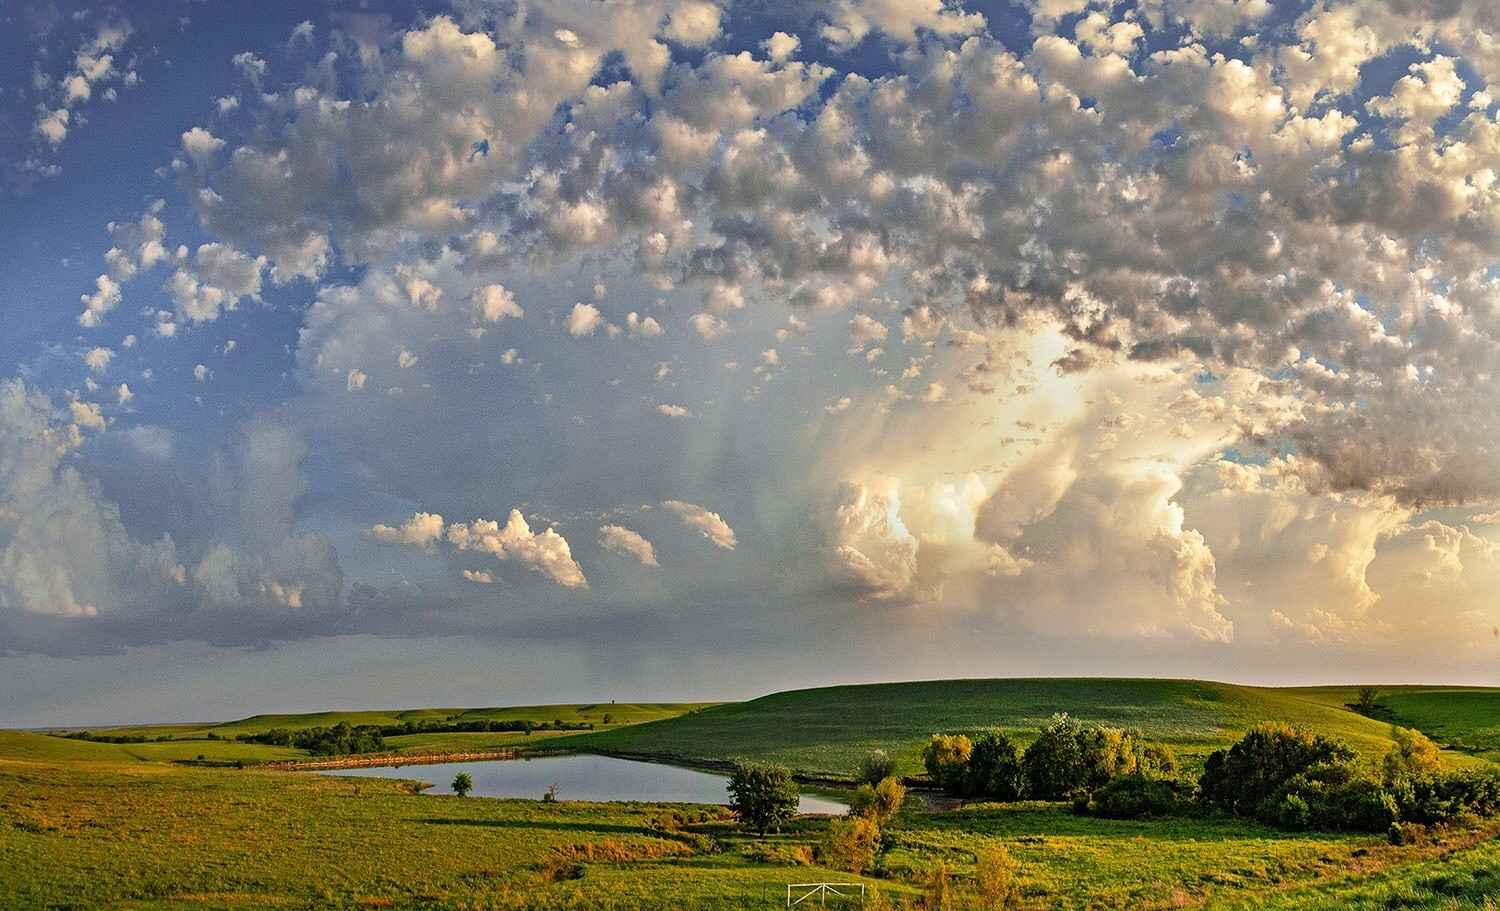 Flint Hills and Clouds